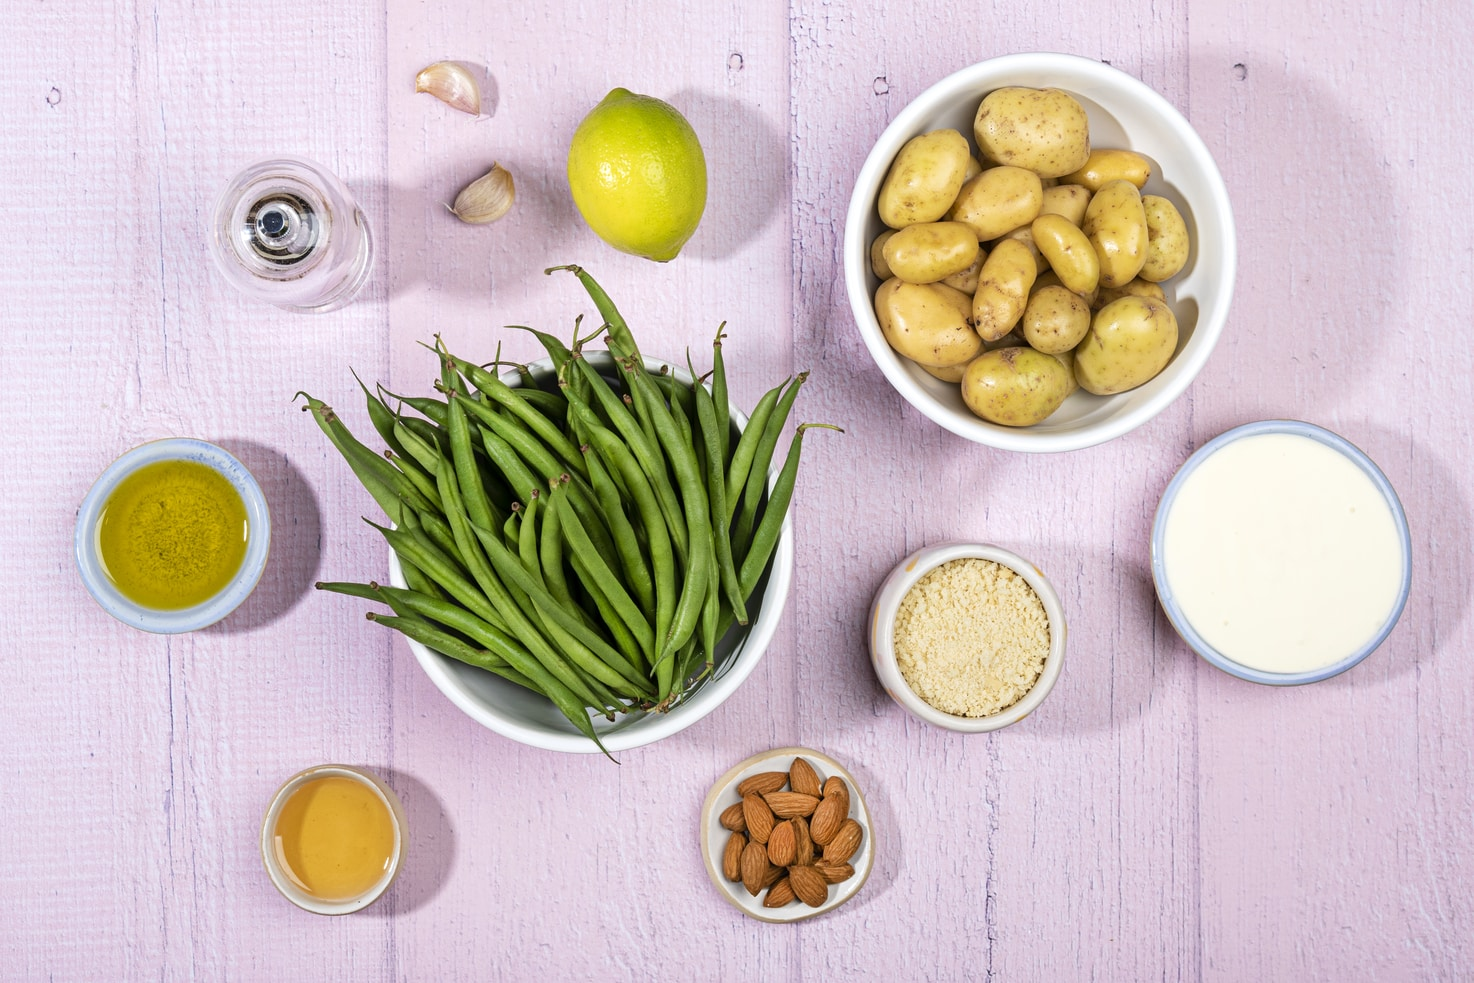 The ingredients for a green bean casserole are laid out on purple painted planks. These include green beans, potatoes, a lime, 2 garlic cloves, pepper, olive oil, panko breadcrumbs, honey, low-fat sour cream and honey. | Hurry The Food Up